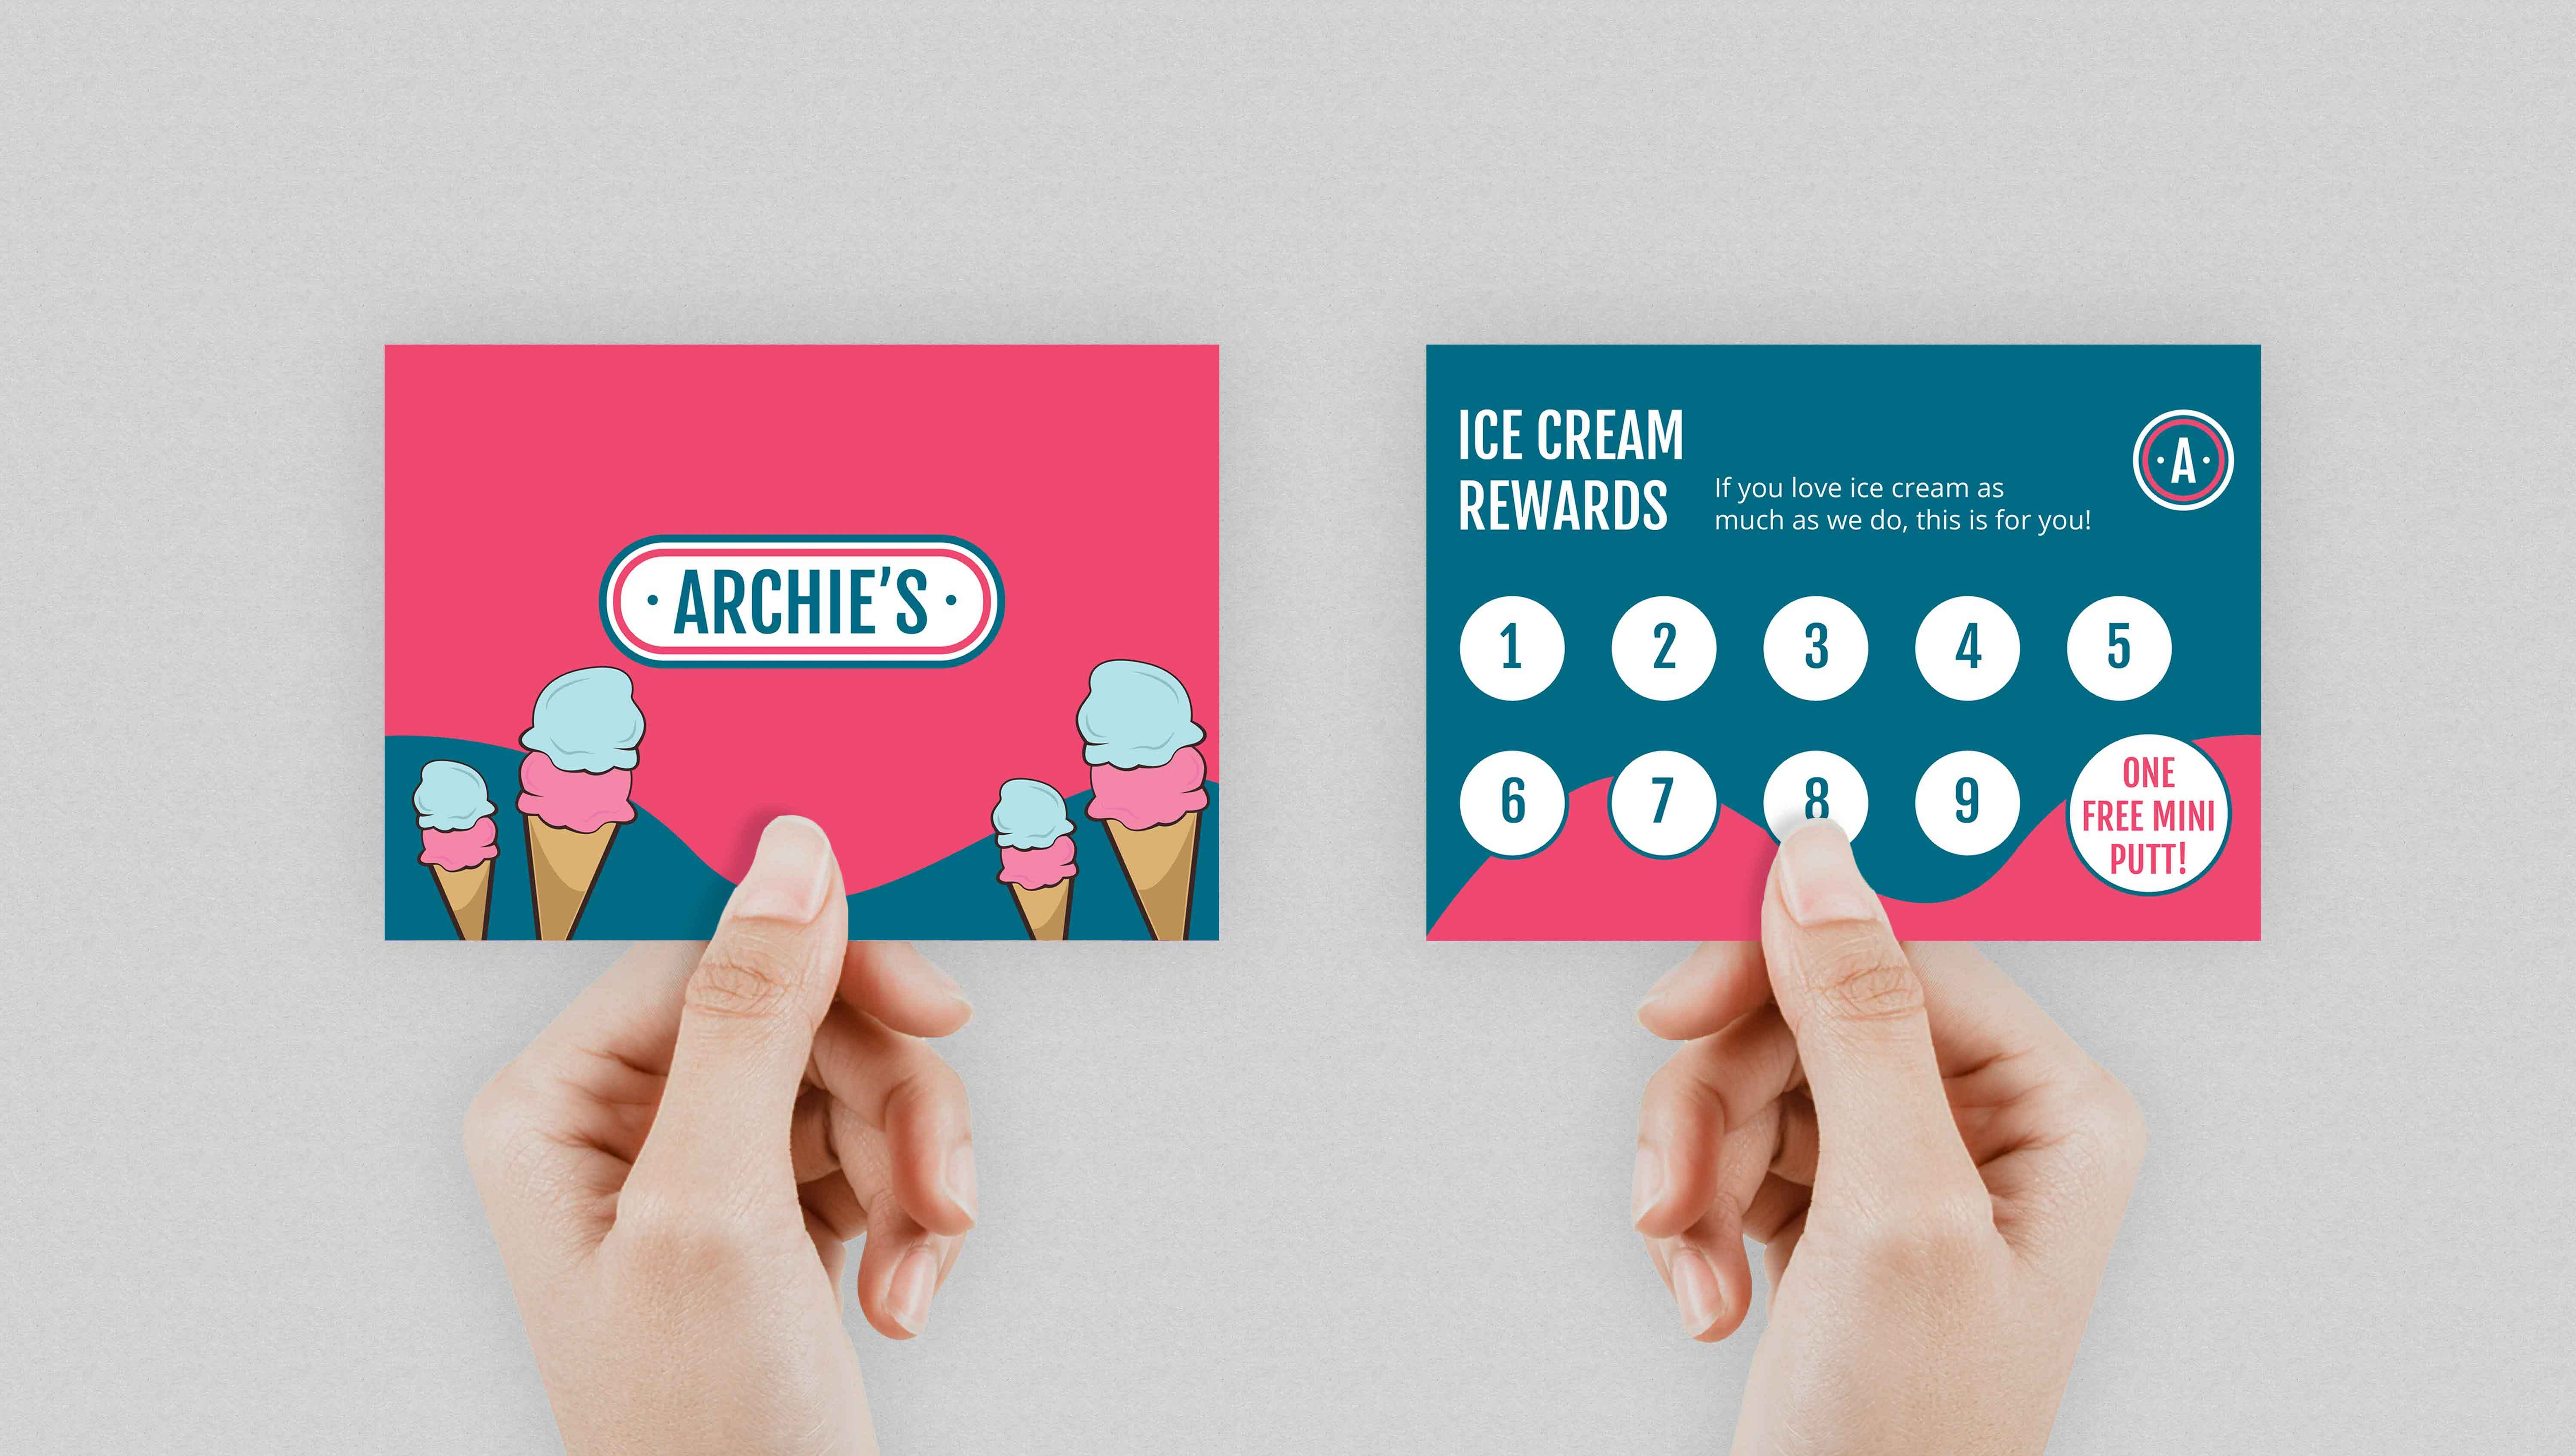 Archie's Ice cream stamp card held by hand